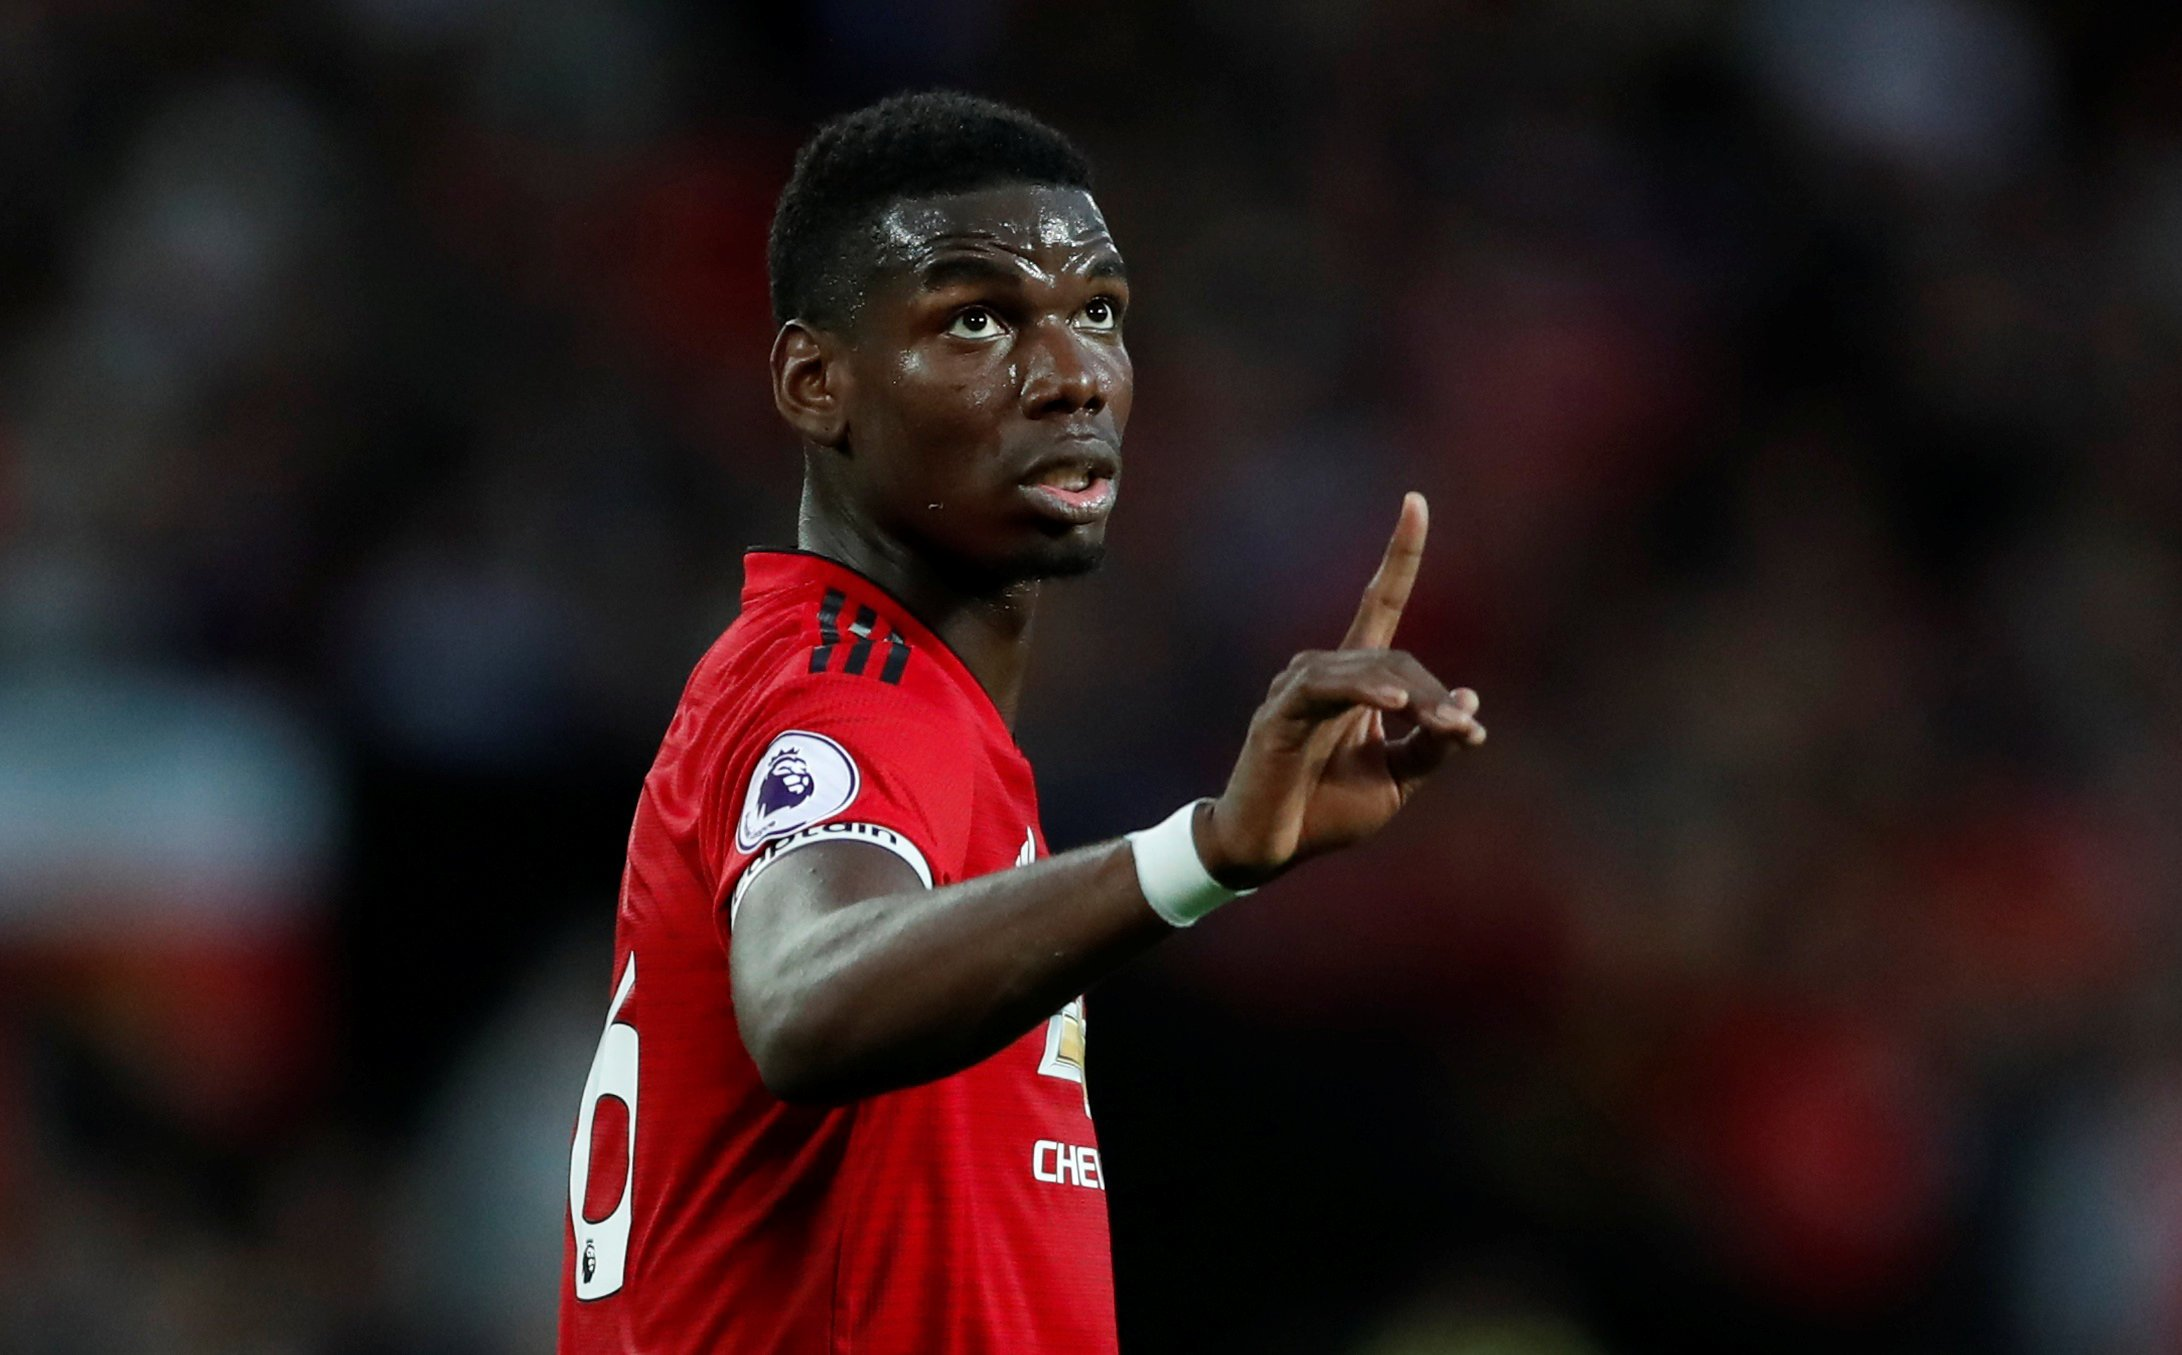 """Soccer Football - Premier League - Manchester United v Leicester City - Old Trafford, Manchester, Britain - August 10, 2018 Manchester United's Paul Pogba Action Images via Reuters/Andrew Boyers EDITORIAL USE ONLY. No use with unauthorized audio, video, data, fixture lists, club/league logos or """"live"""" services. Online in-match use limited to 75 images, no video emulation. No use in betting, games or single club/league/player publications. Please contact your account representative for further details."""